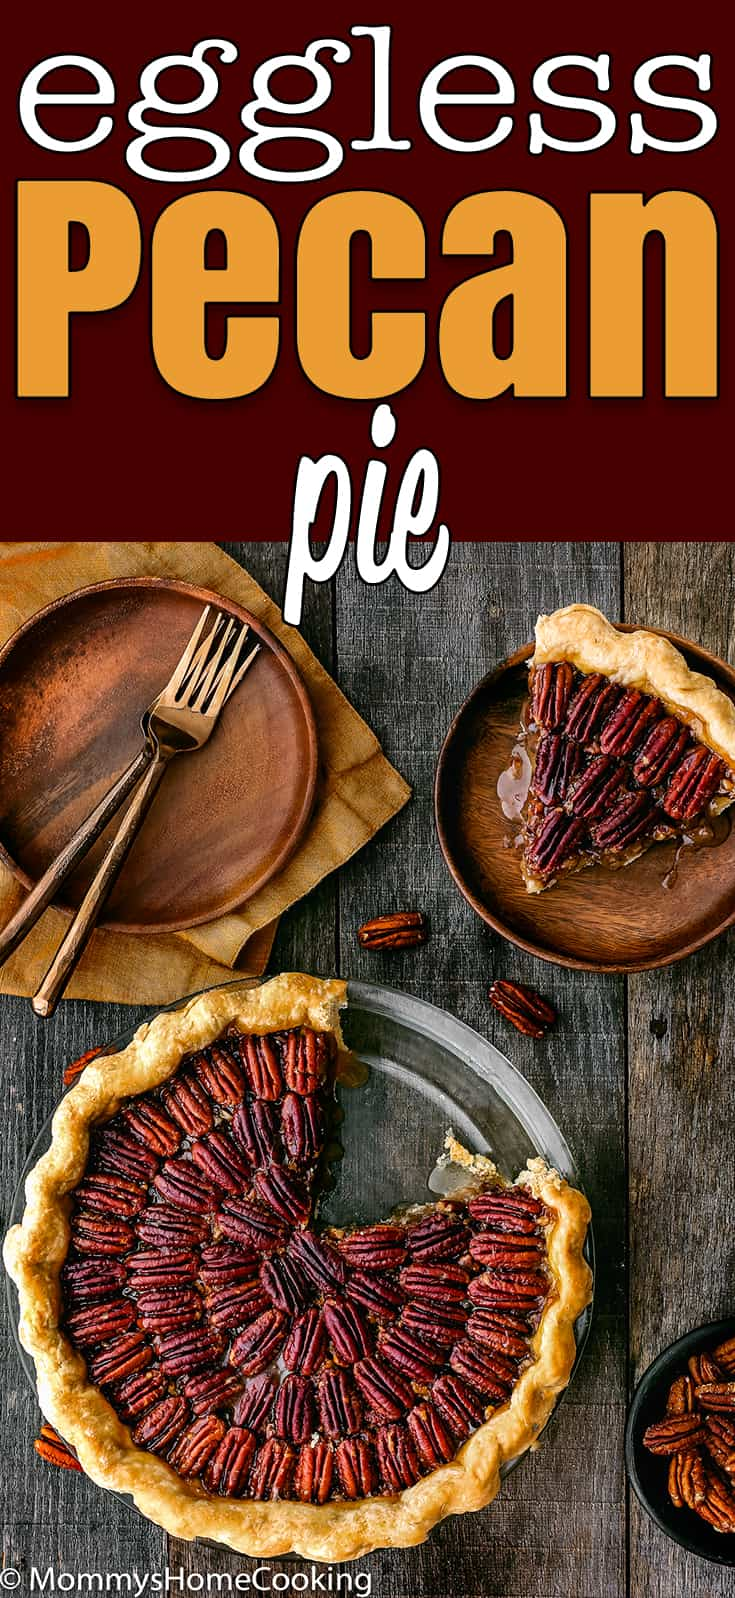 This uber-delicious Easy Eggless Pecan Pie is a MUST-MAKE for the holidays! With its crispy top, the gooey center and the flaky crust, this Thanksgiving classic dessert will wow you and your guests. Easy to make, easier to eat. #recipe #pecan #pie #thansgiving #holidays #easy #dessert #eggless #eggfree #egglessbaking